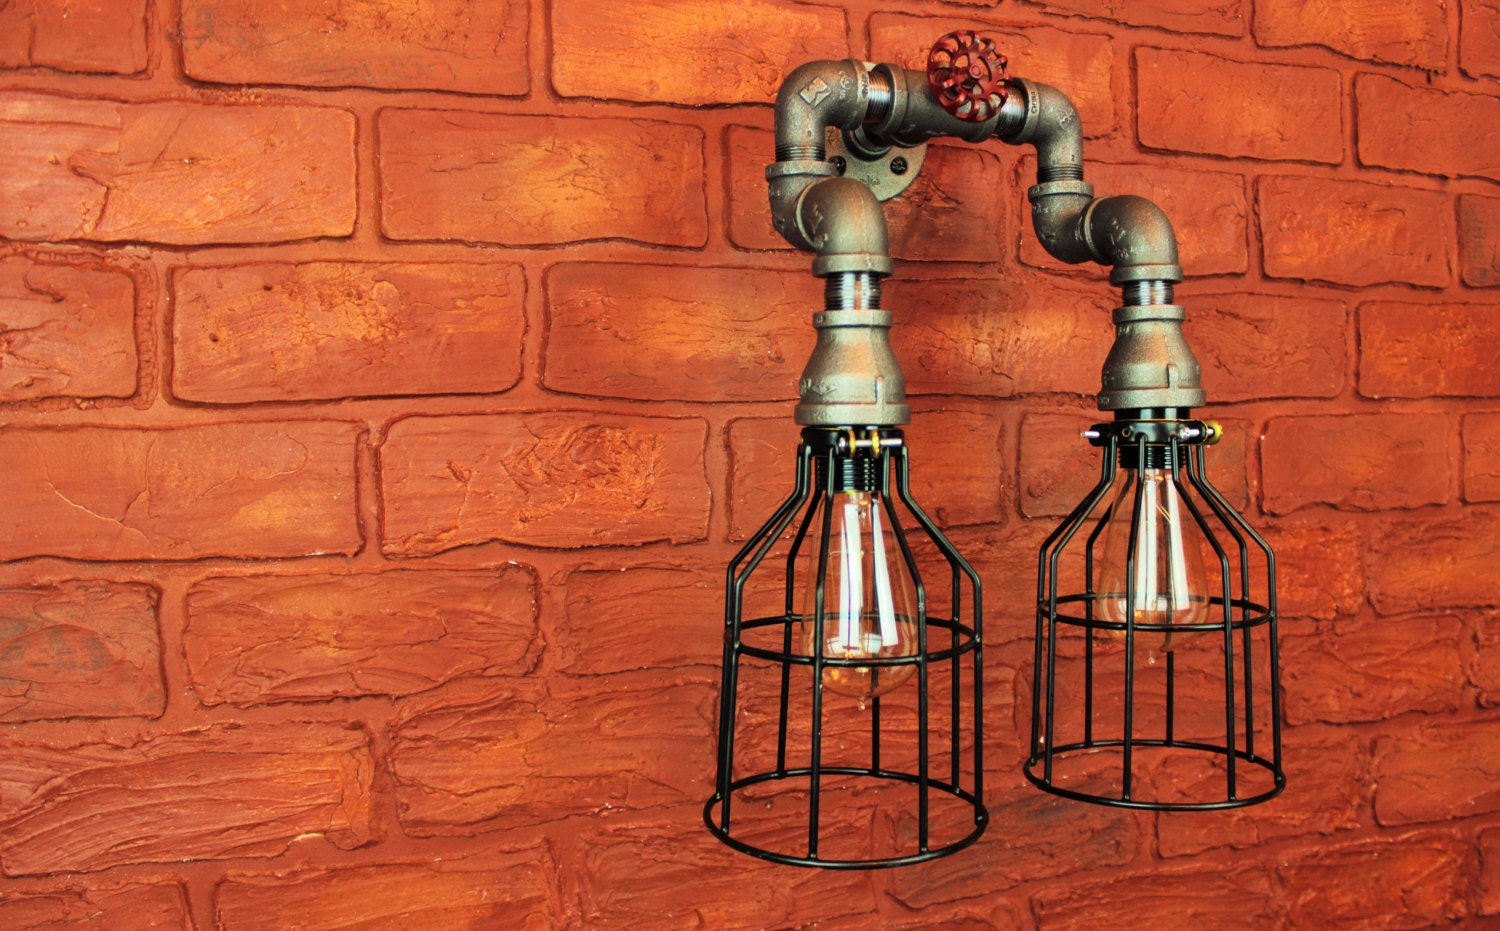 Electric Wall Sconce Light Fixture Pipe Lighting W Cages